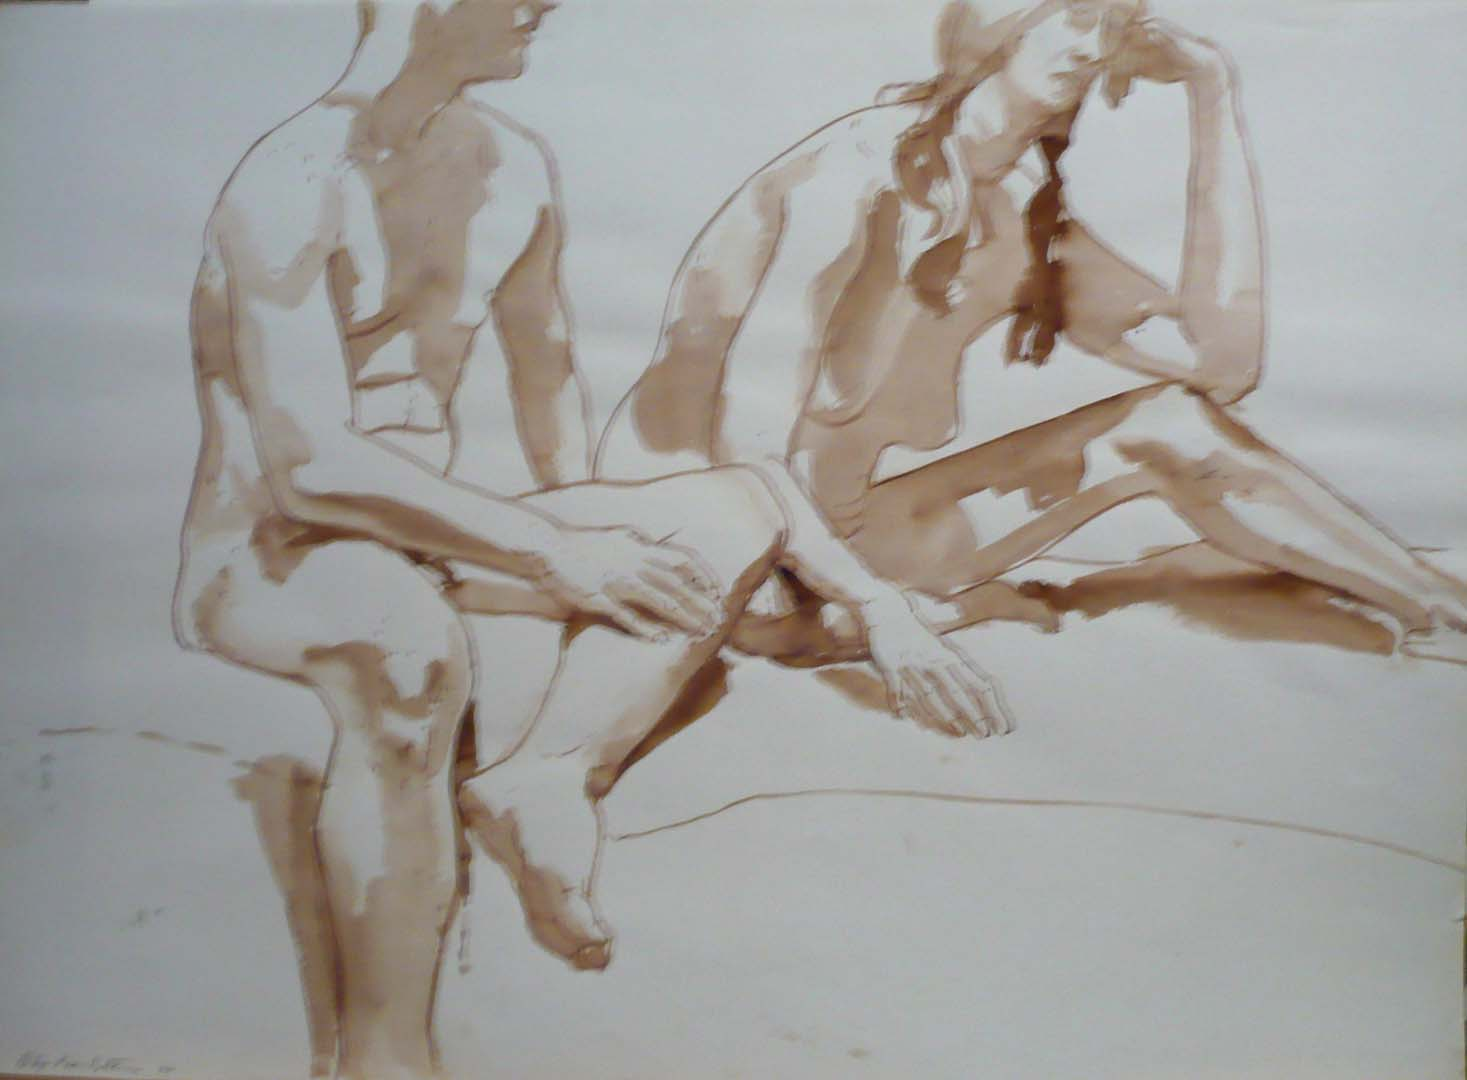 1966 Untitled (two models) Sepia 22 x 29.875